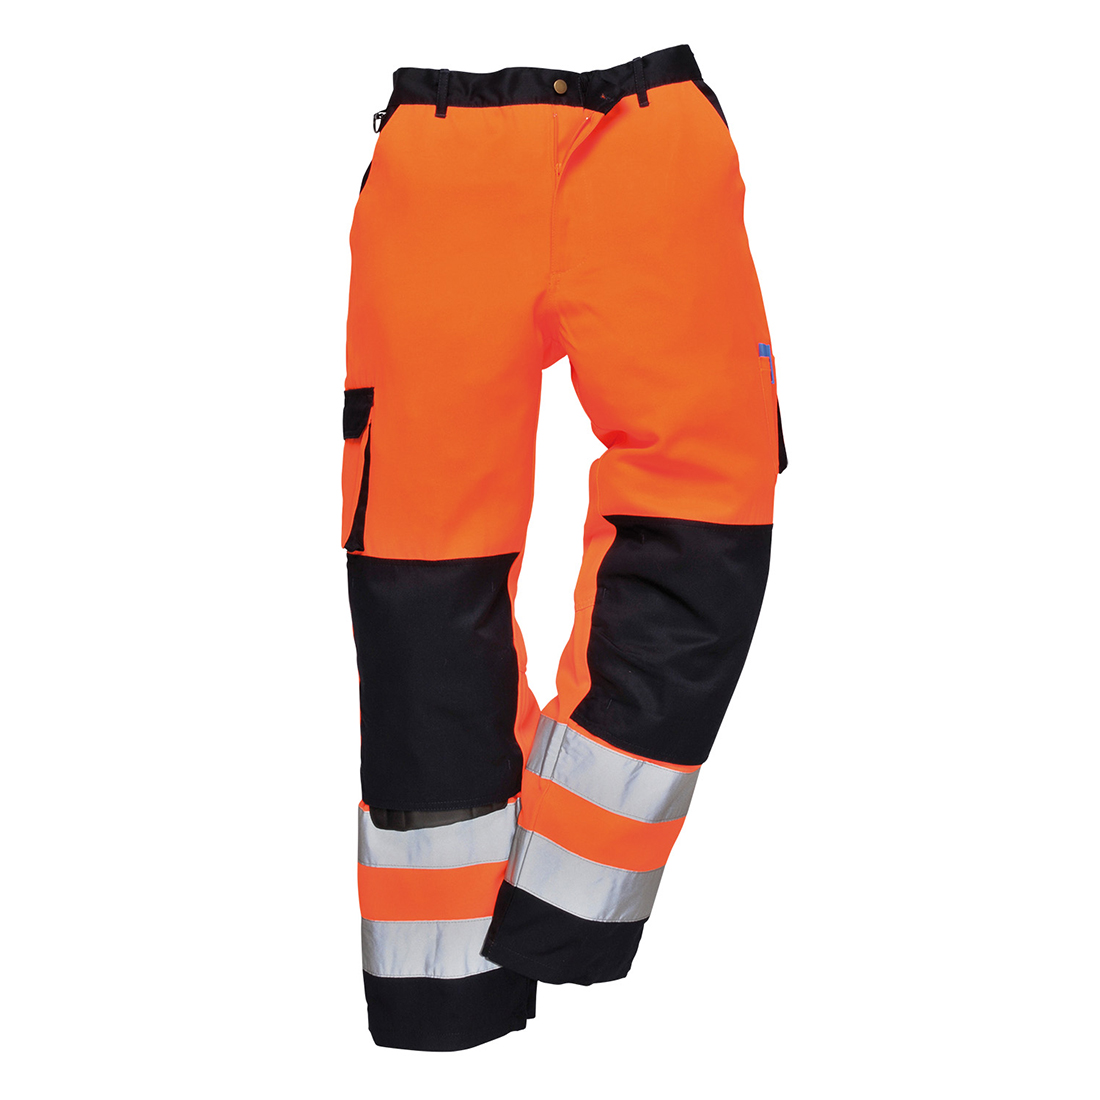 Pantalon de travail HV Lyon orange   marine PORTWEST TX51 e4511399d8a